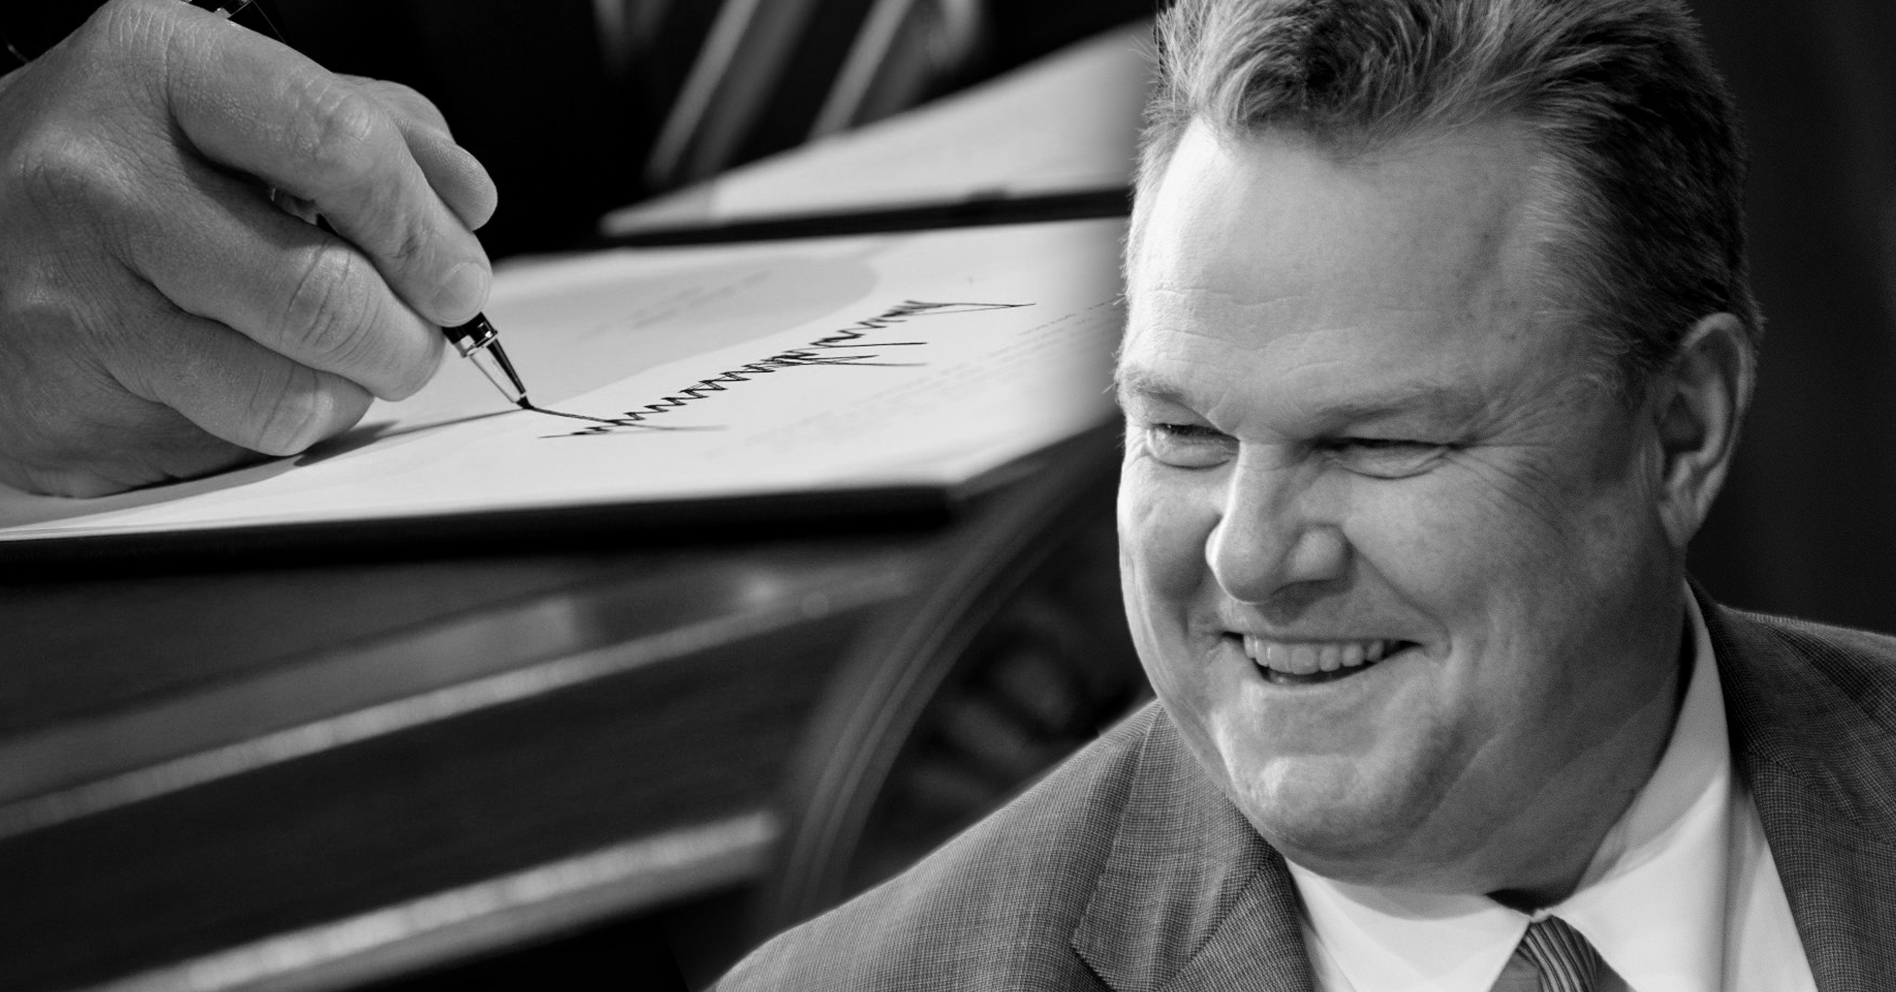 Bipartisan Workforce Bill Would Help >> Tester Passes 20 Bipartisan Bills Into Law This Congress